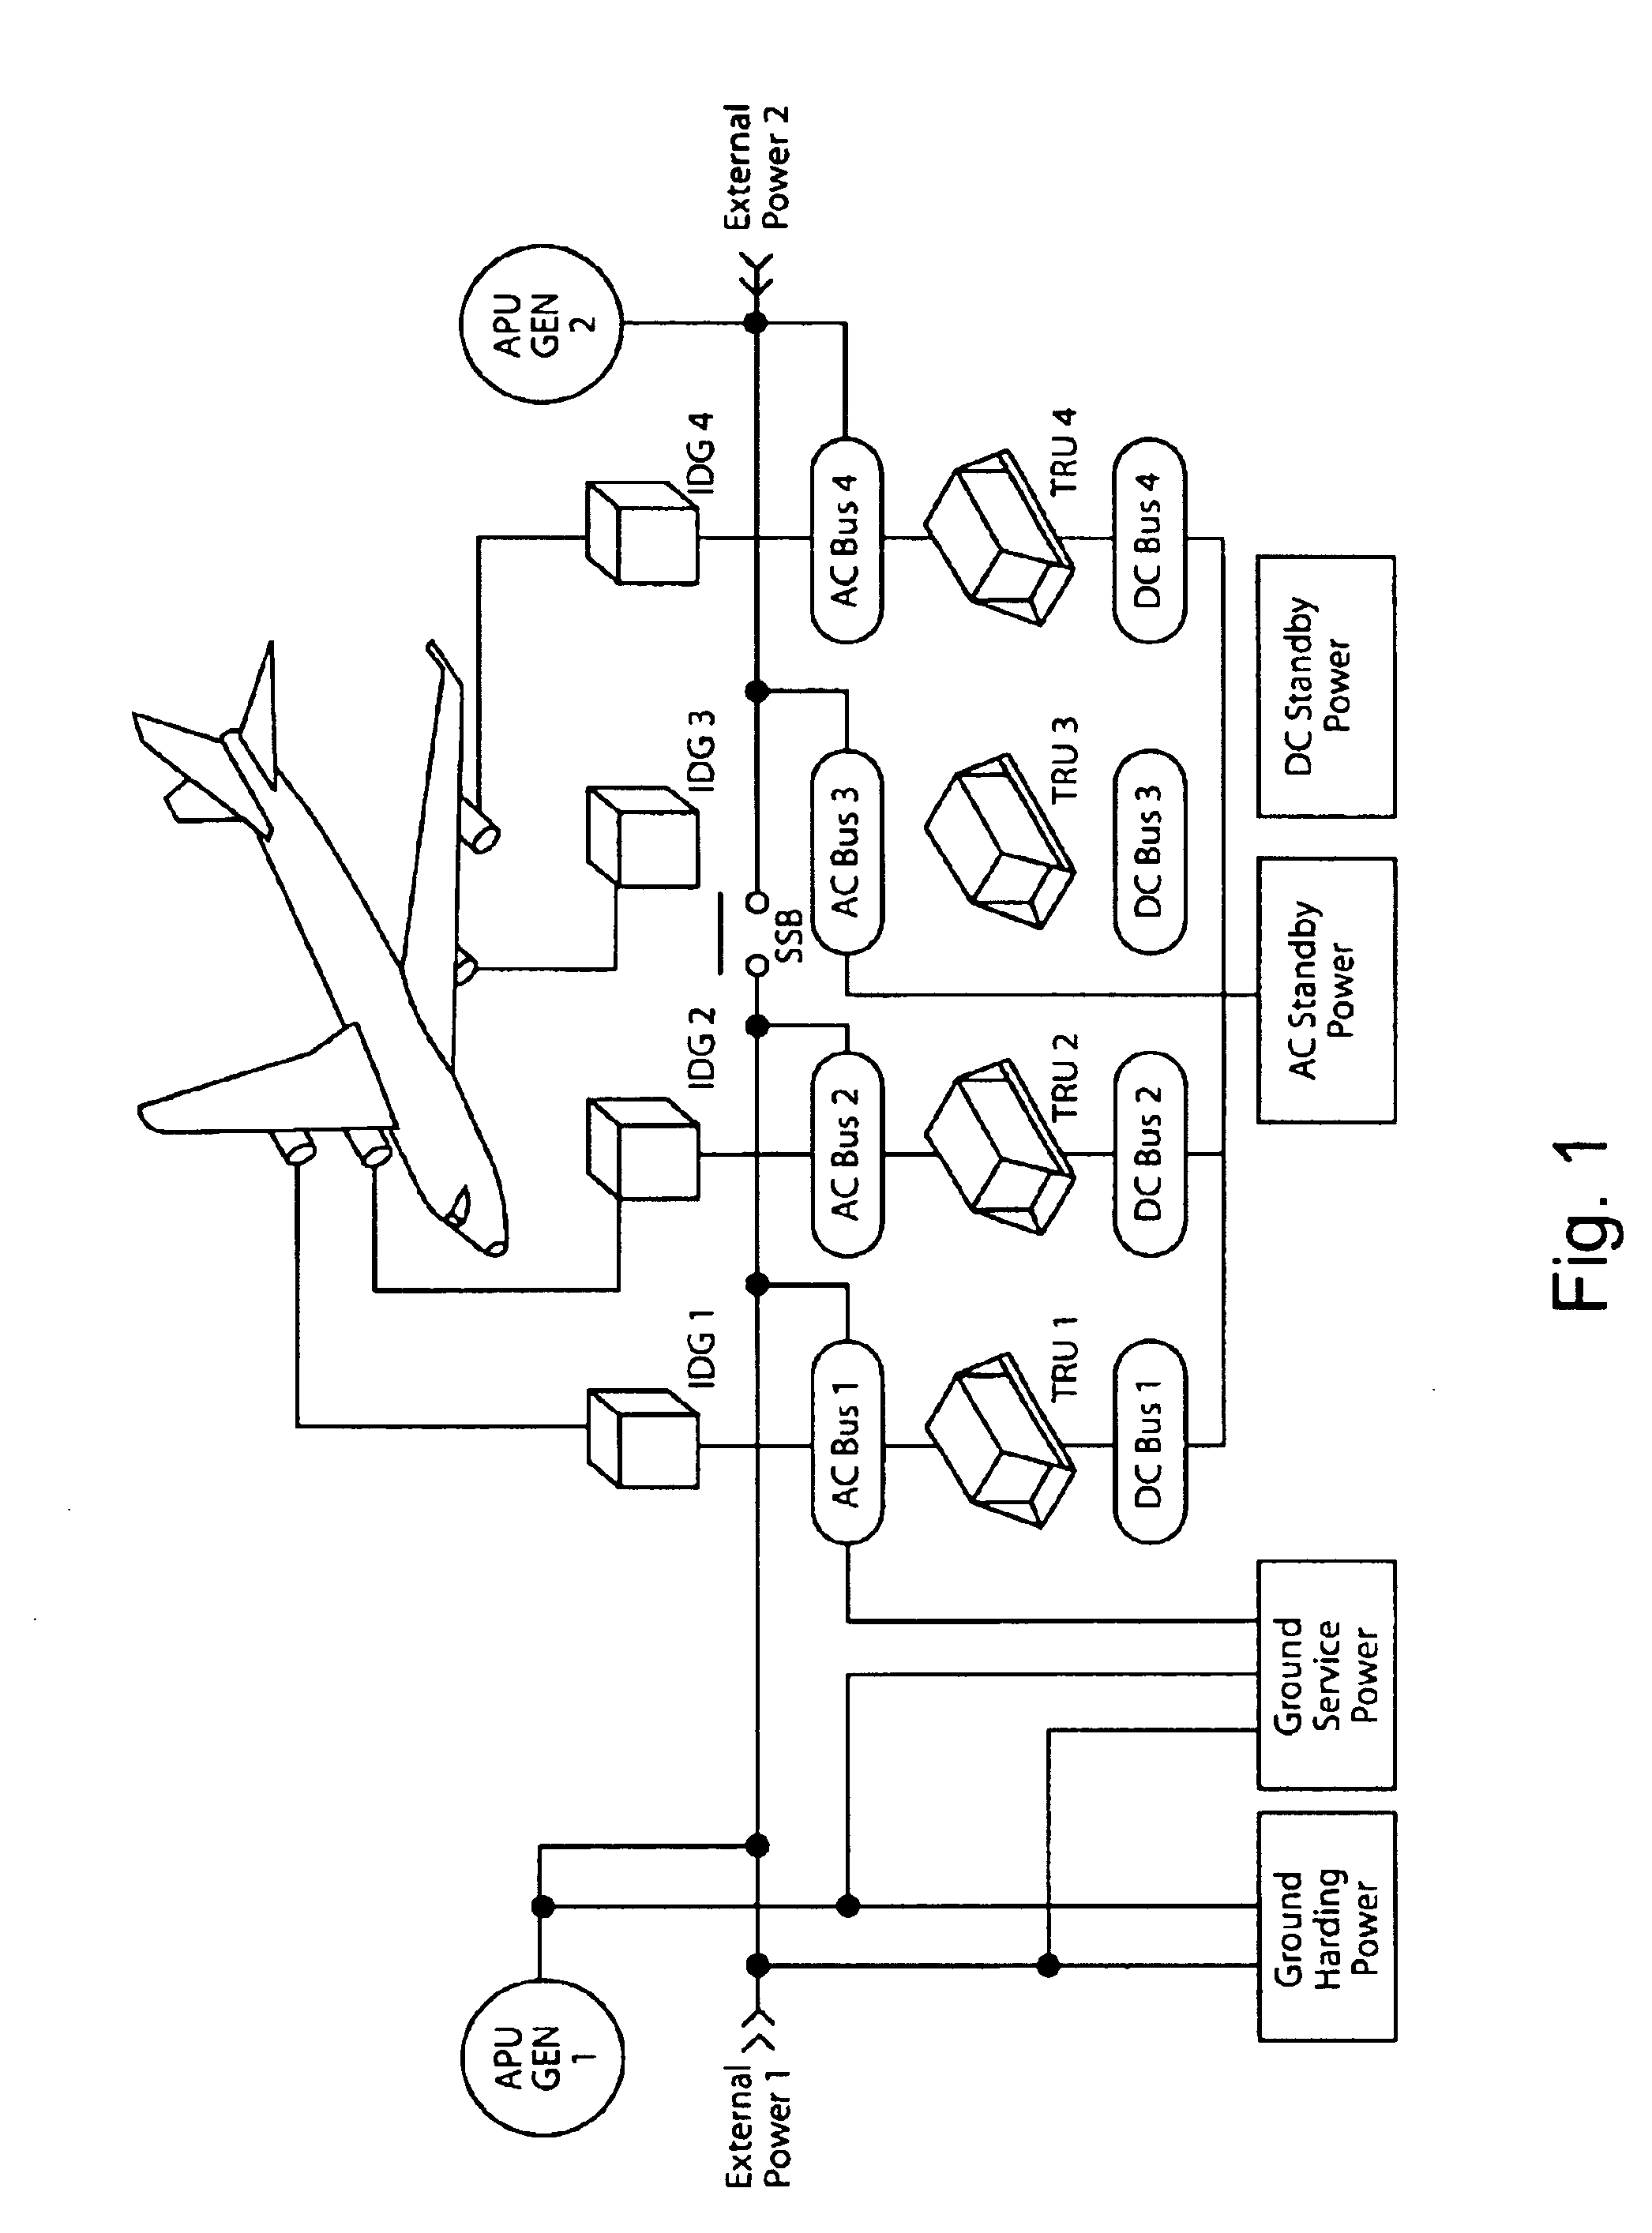 Wiring diagram for an autogage tach the wiring diagram wiring diagram